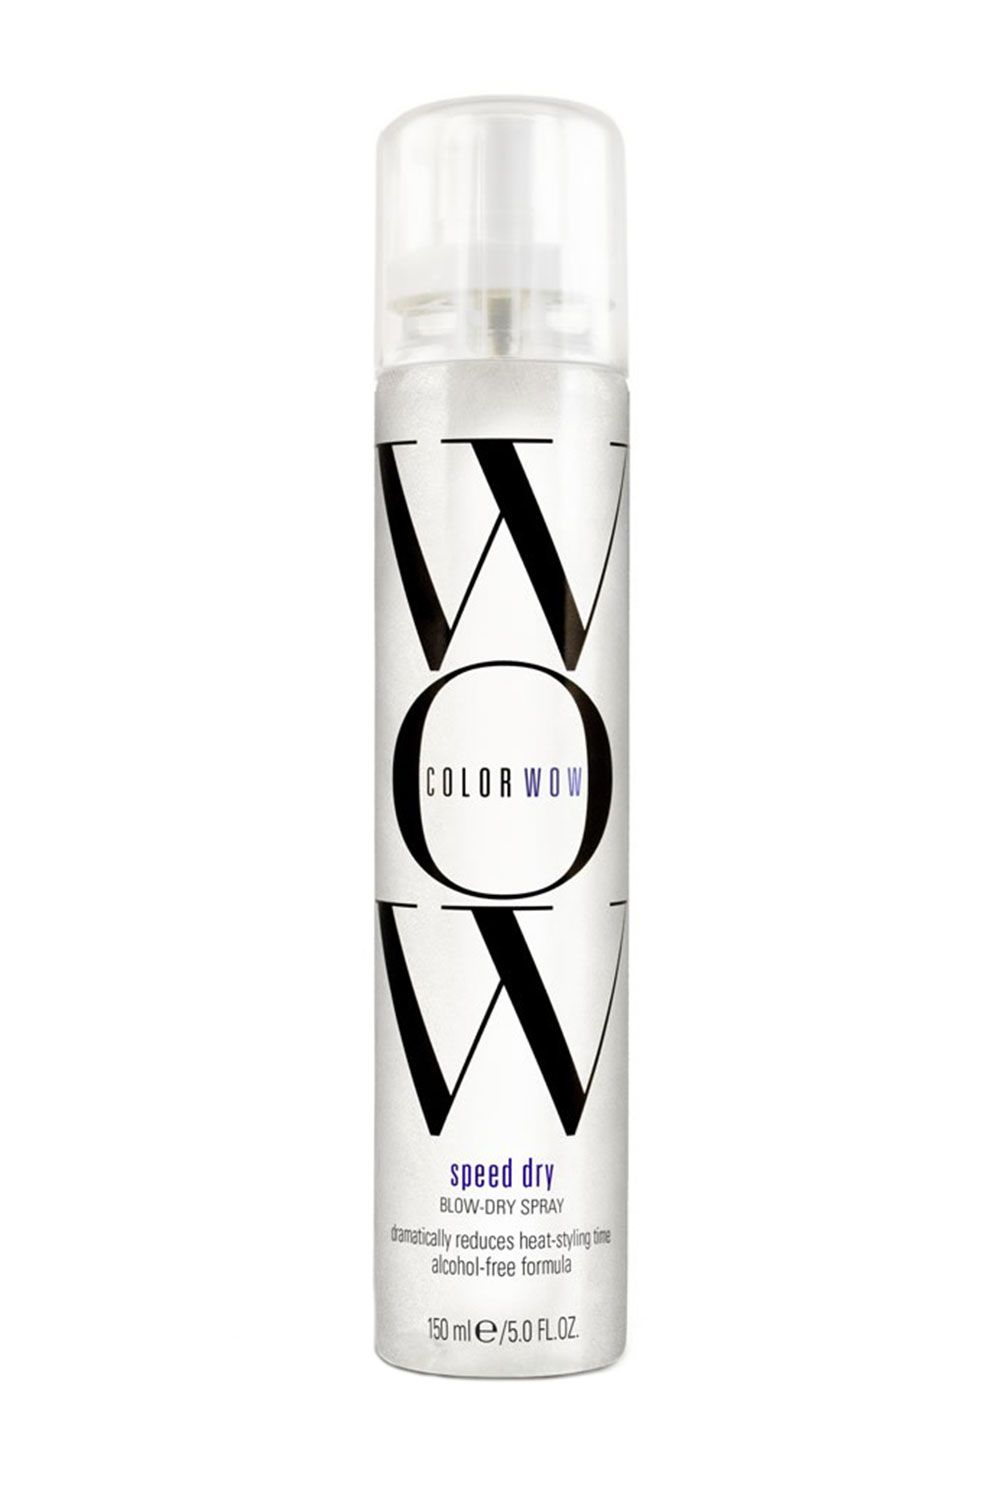 "<p>ColorWow is a line for color-treated hair (#WhoWouldaThunkIt) but this blowdry spray is a saving grace for everyone—natural or not—alike. The alcohol-free formula cuts drying time drastically, while leaving a healthy shine (with no stickiness). Trust.</p><p>$24, <a href=""http://www.ulta.com/ulta/browse/productDetail.jsp?productId=xlsImpprod6470111"" target=""_blank"">ulta.com</a></p>"